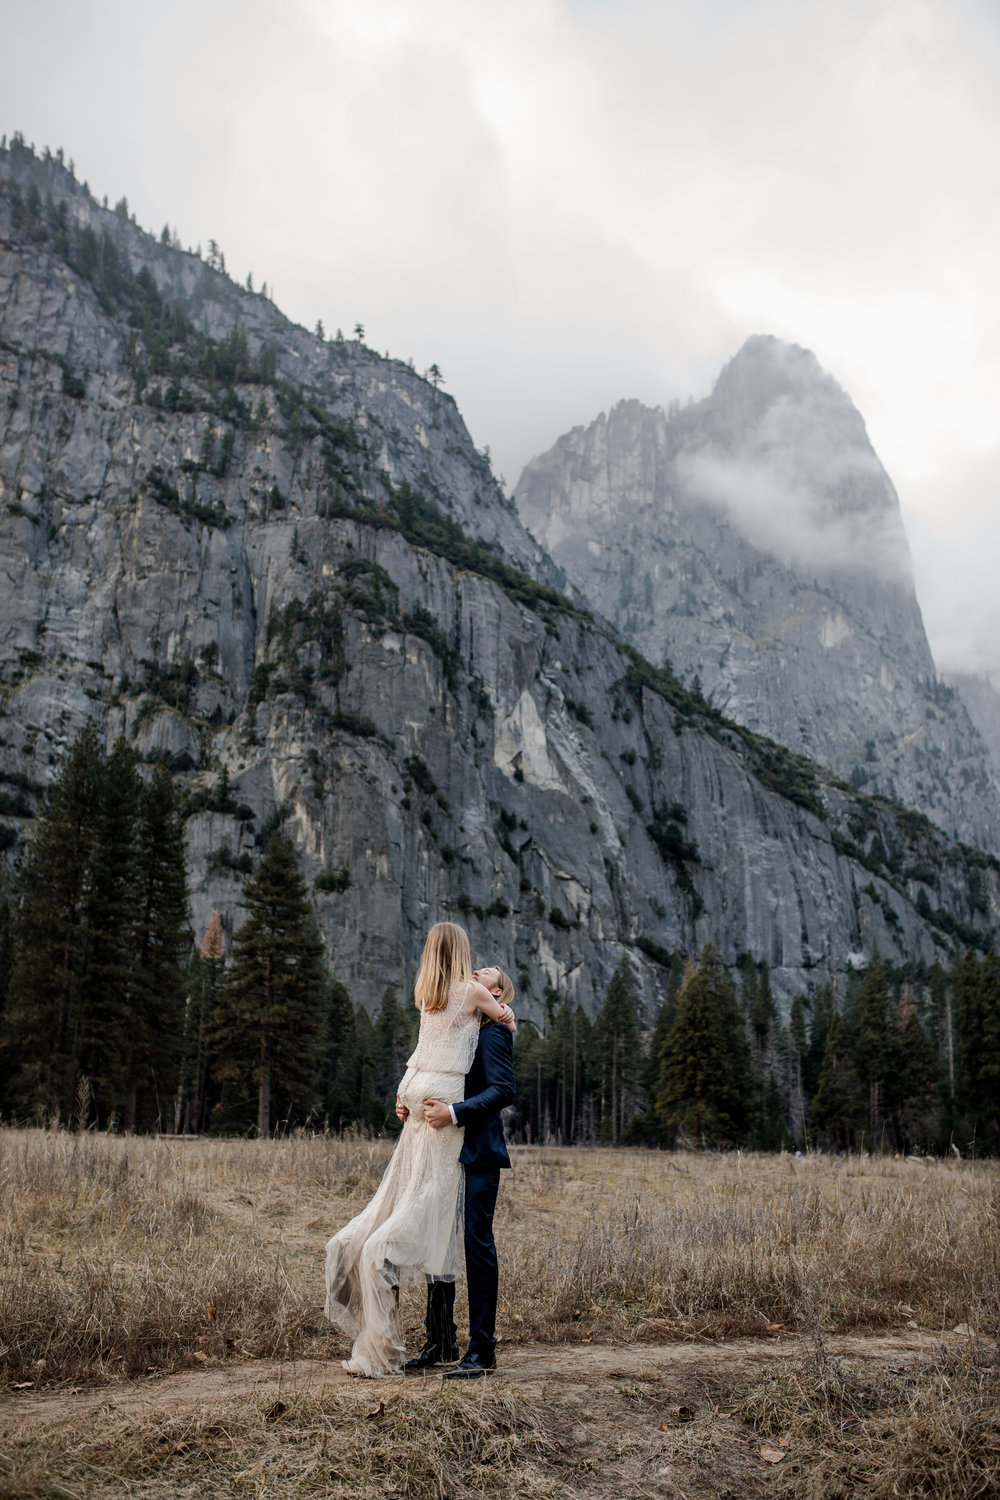 nicole-daacke-photography-yousemite-national-park-elopement-photographer-winter-cloud-moody-elope-inspiration-yosemite-valley-tunnel-view-winter-cloud-fog-weather-wedding-photos-65.jpg